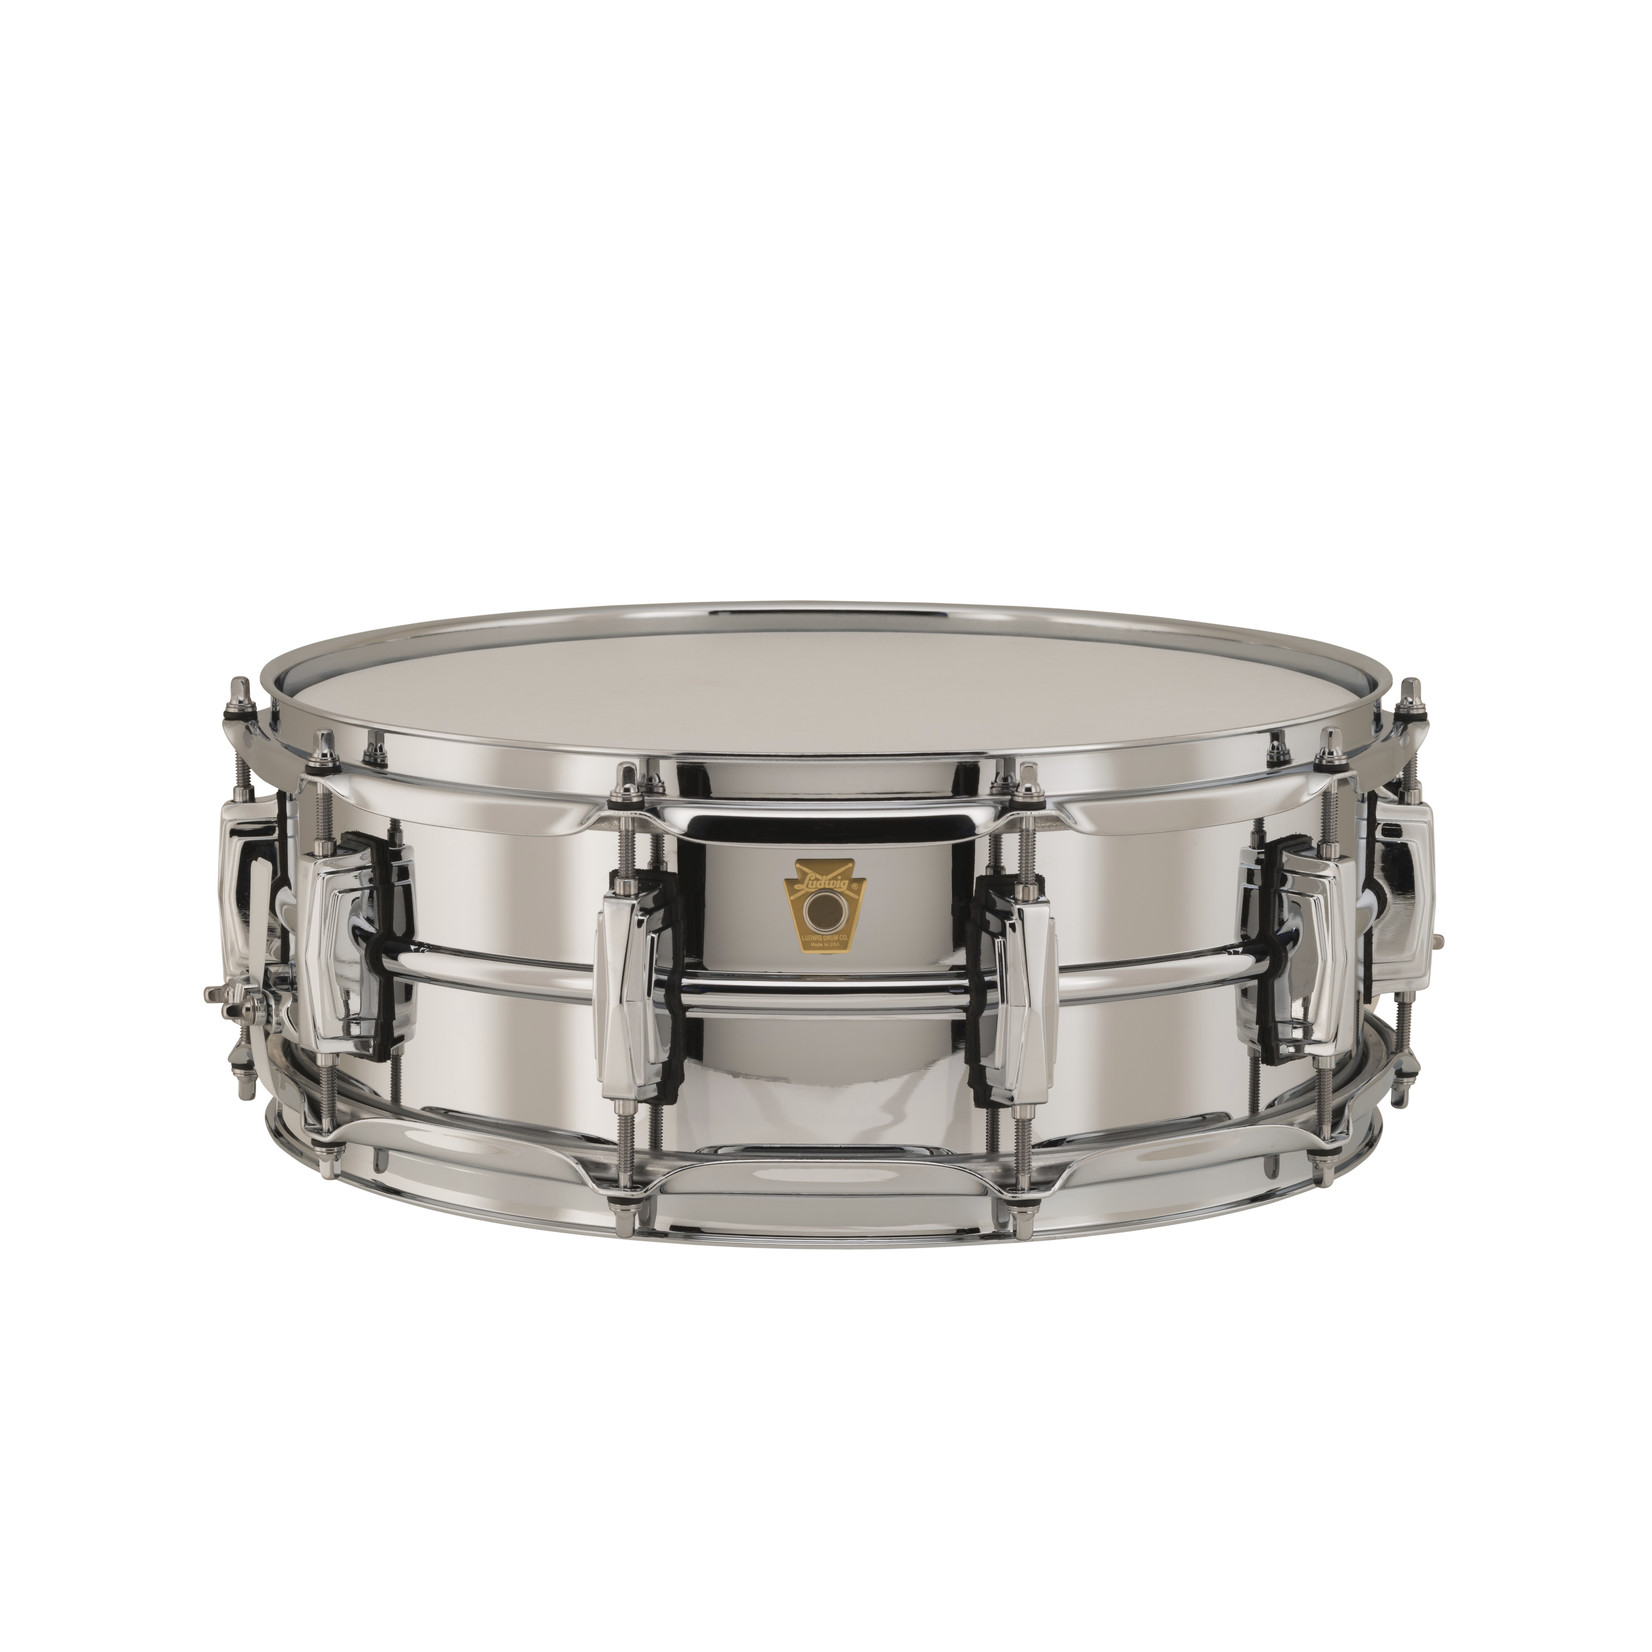 Ludwig Ludwig 5X14 Supraphonic Chrome over Brass Snare Drum / Imperial Lugs / Chrome Hardware